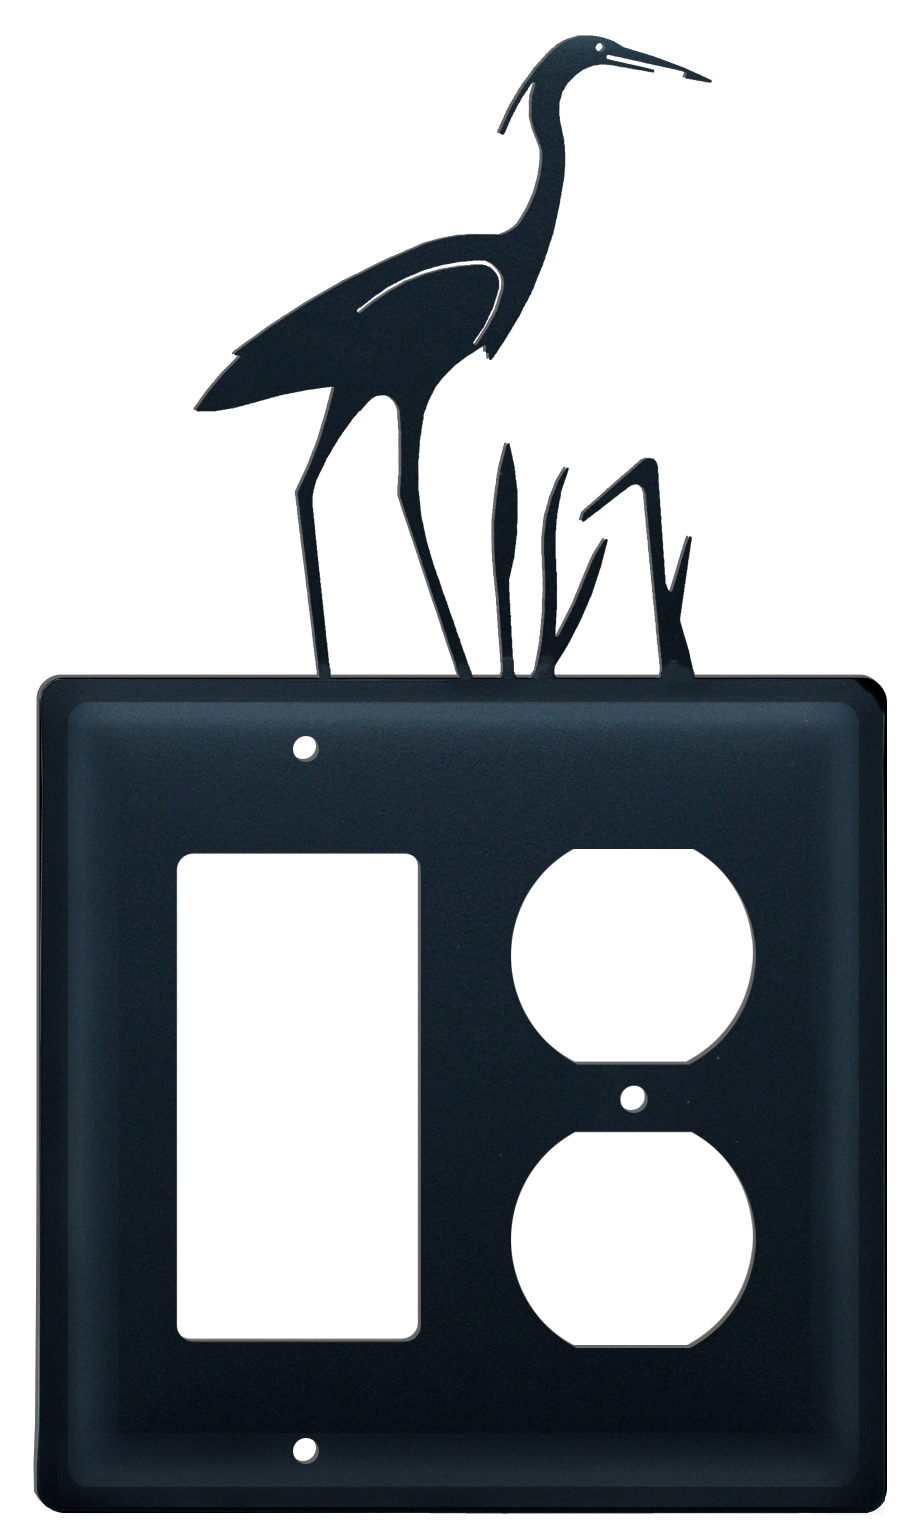 heron singles On sale today don't miss this new low price for singleelectrical cover, single, heron.